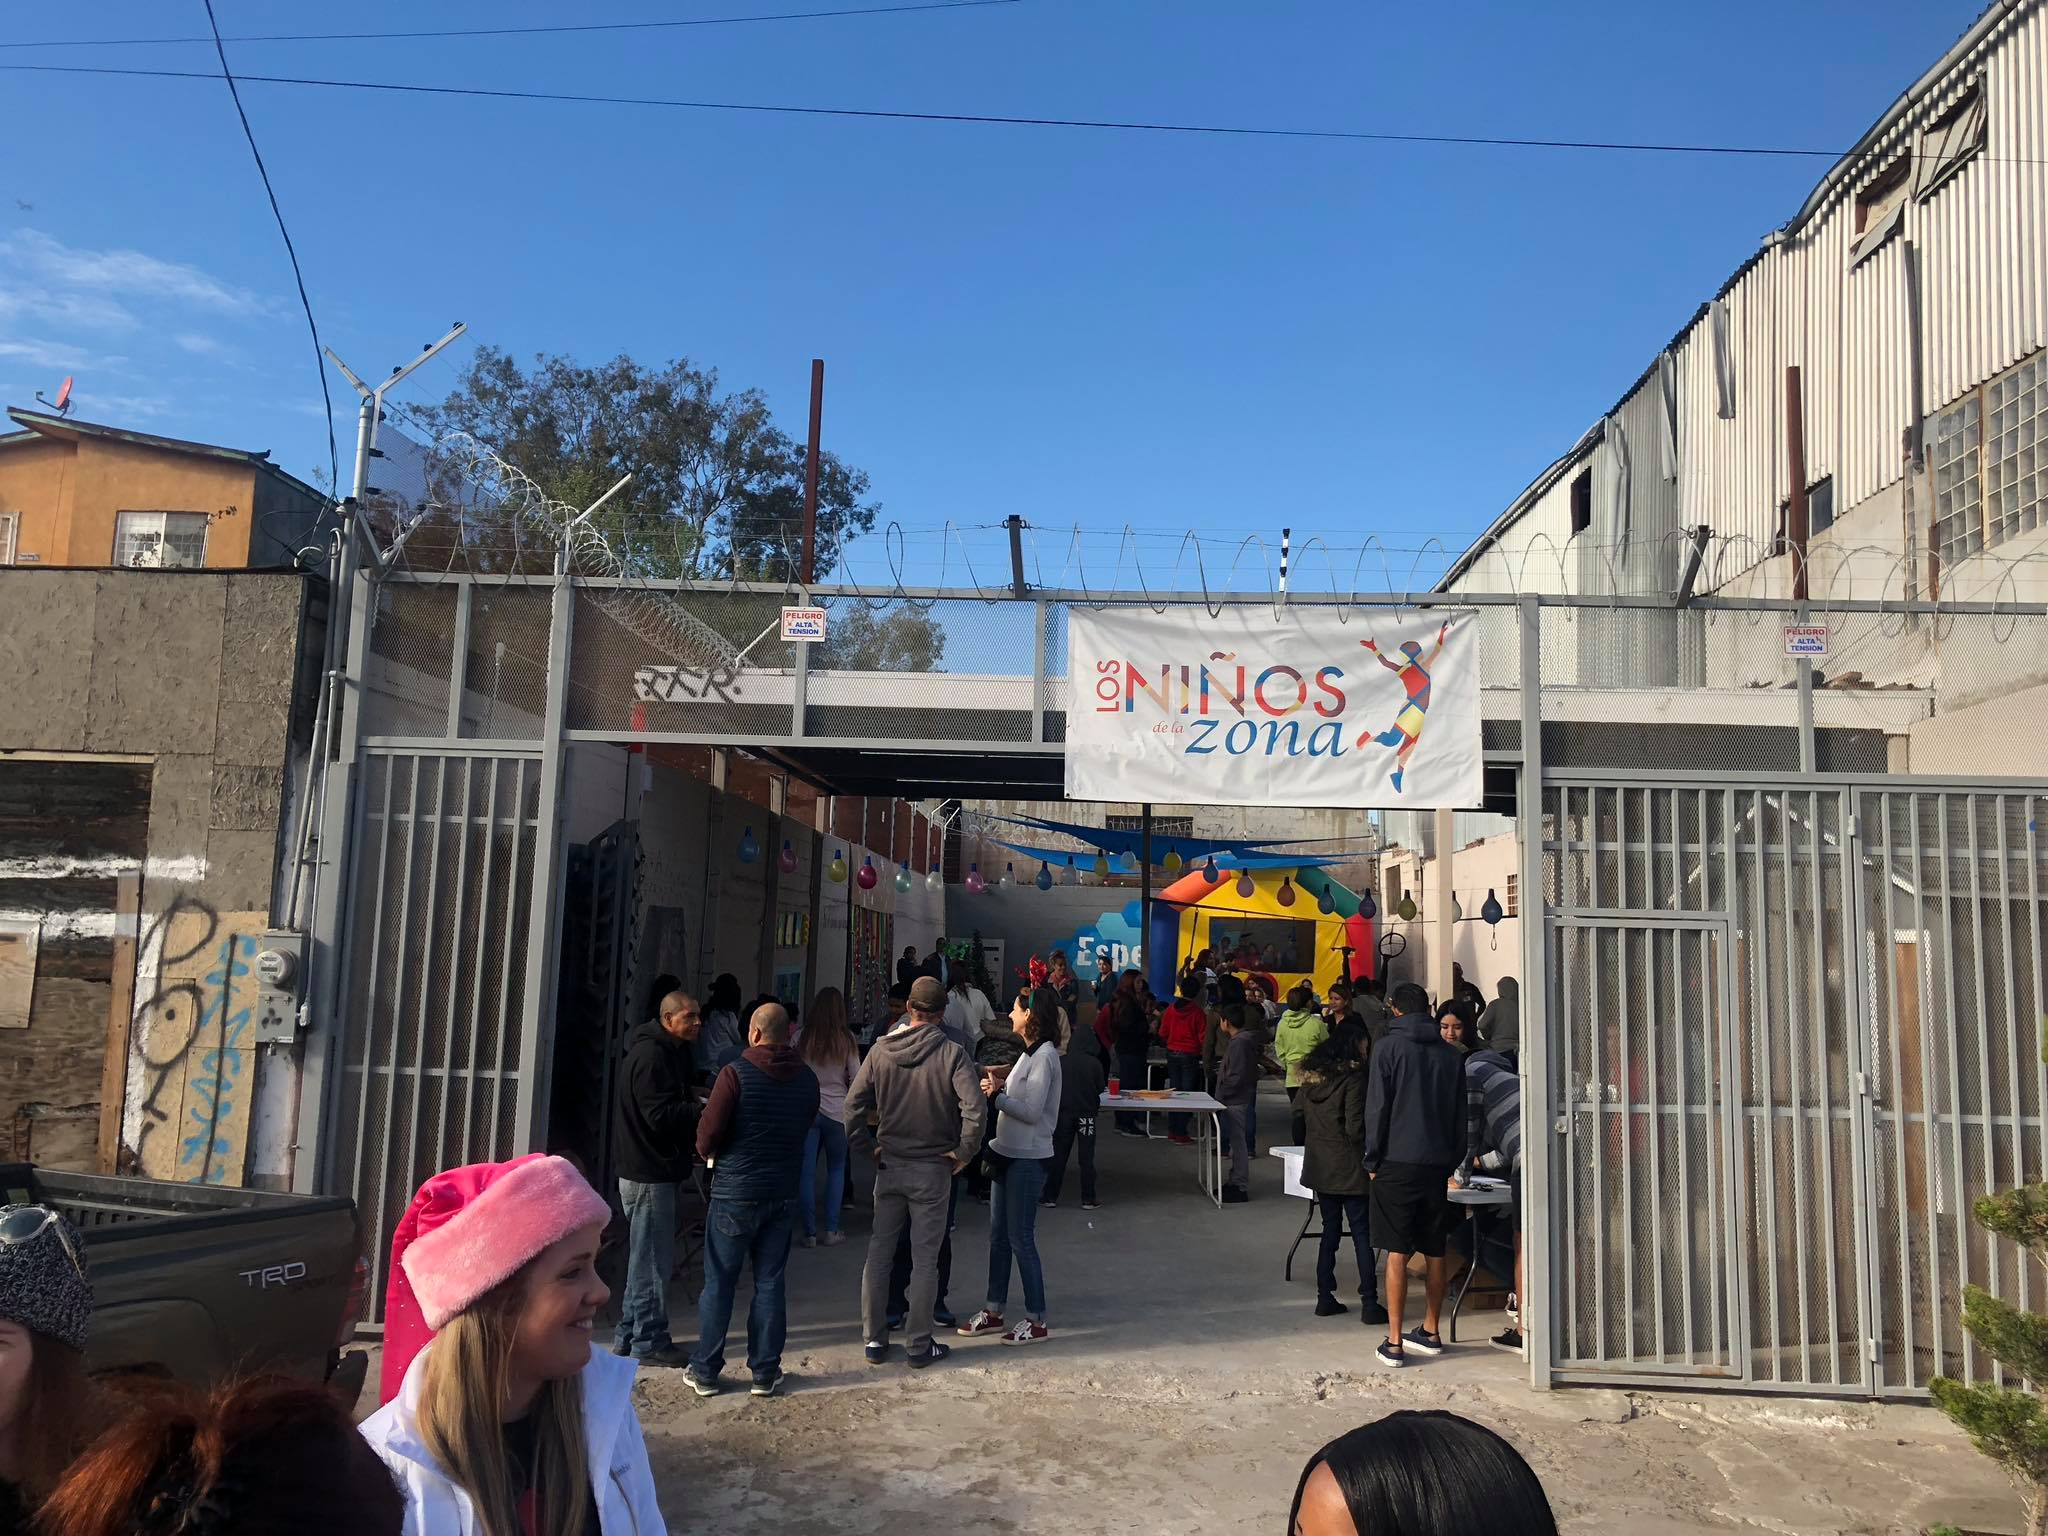 The entrance to Hope Zone- an outdoor space between two buildings, lined with barbed wire.